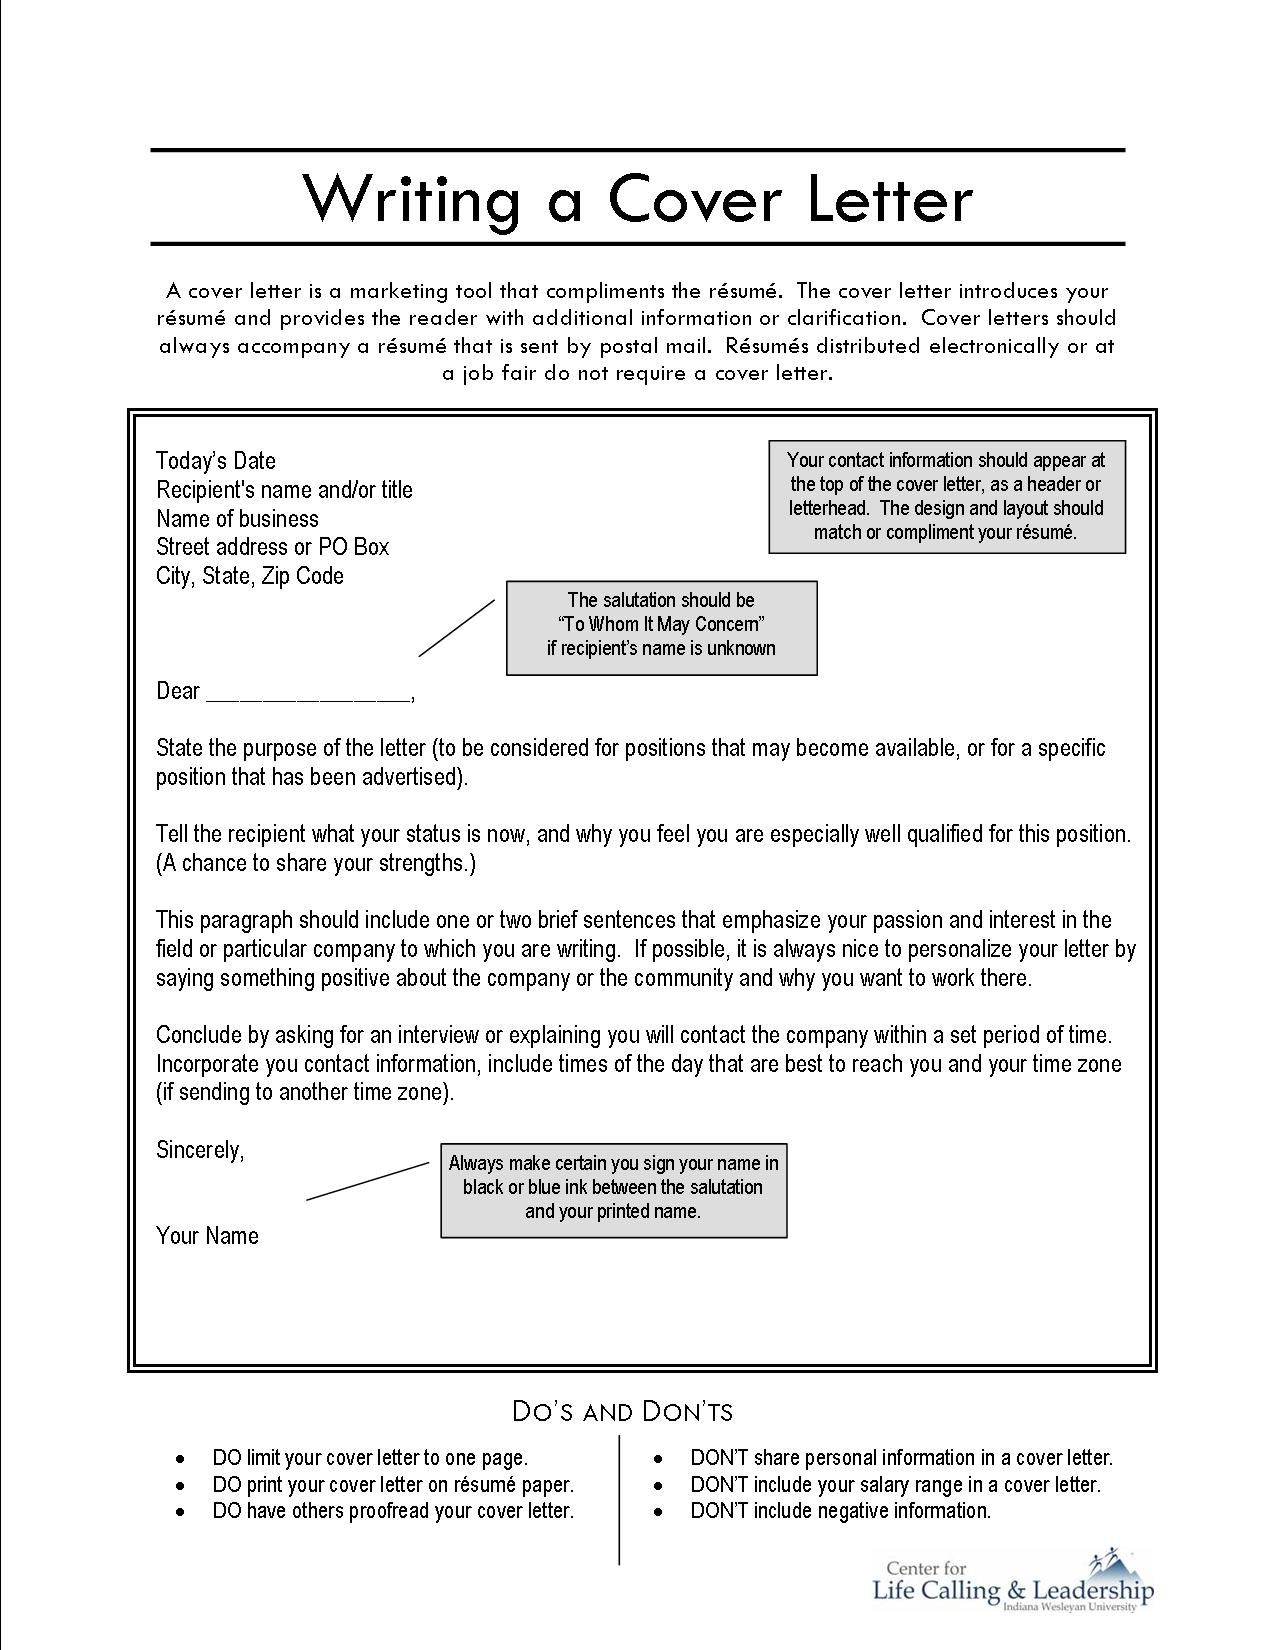 Popular best essay editor for hire for school rotary essay cover letter with enclosures cover letters templates in enclosure alib madrichimfo Choice Image